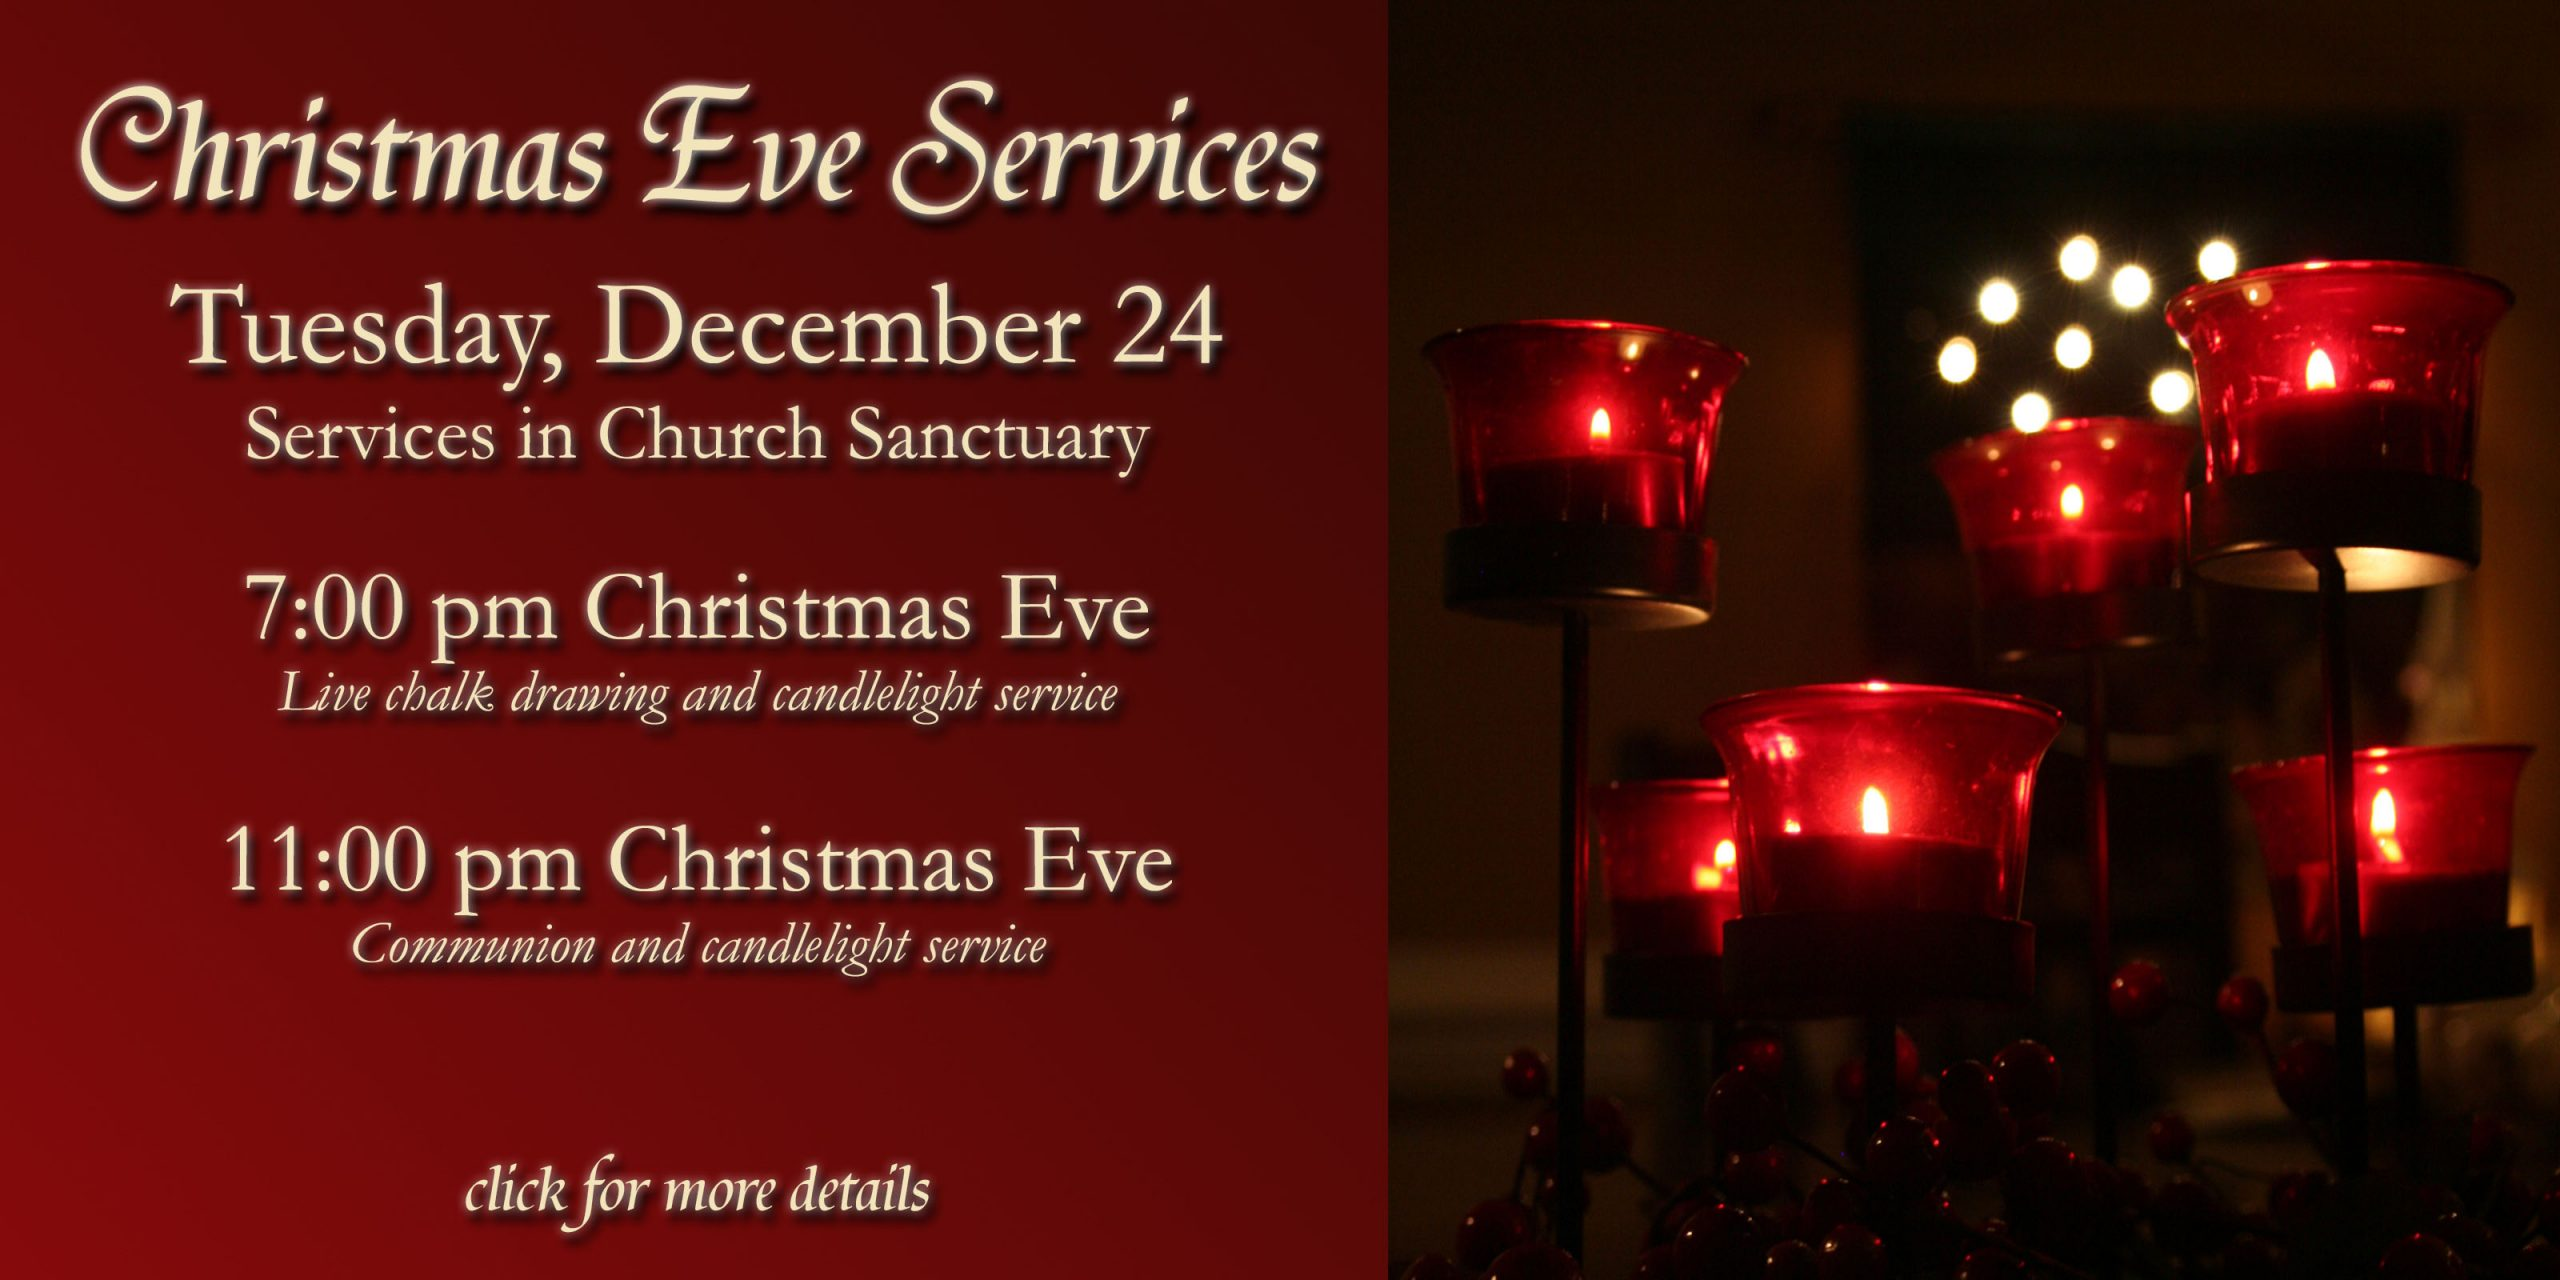 Christmas-Eve-Schedule-12-24-19-1-scaled